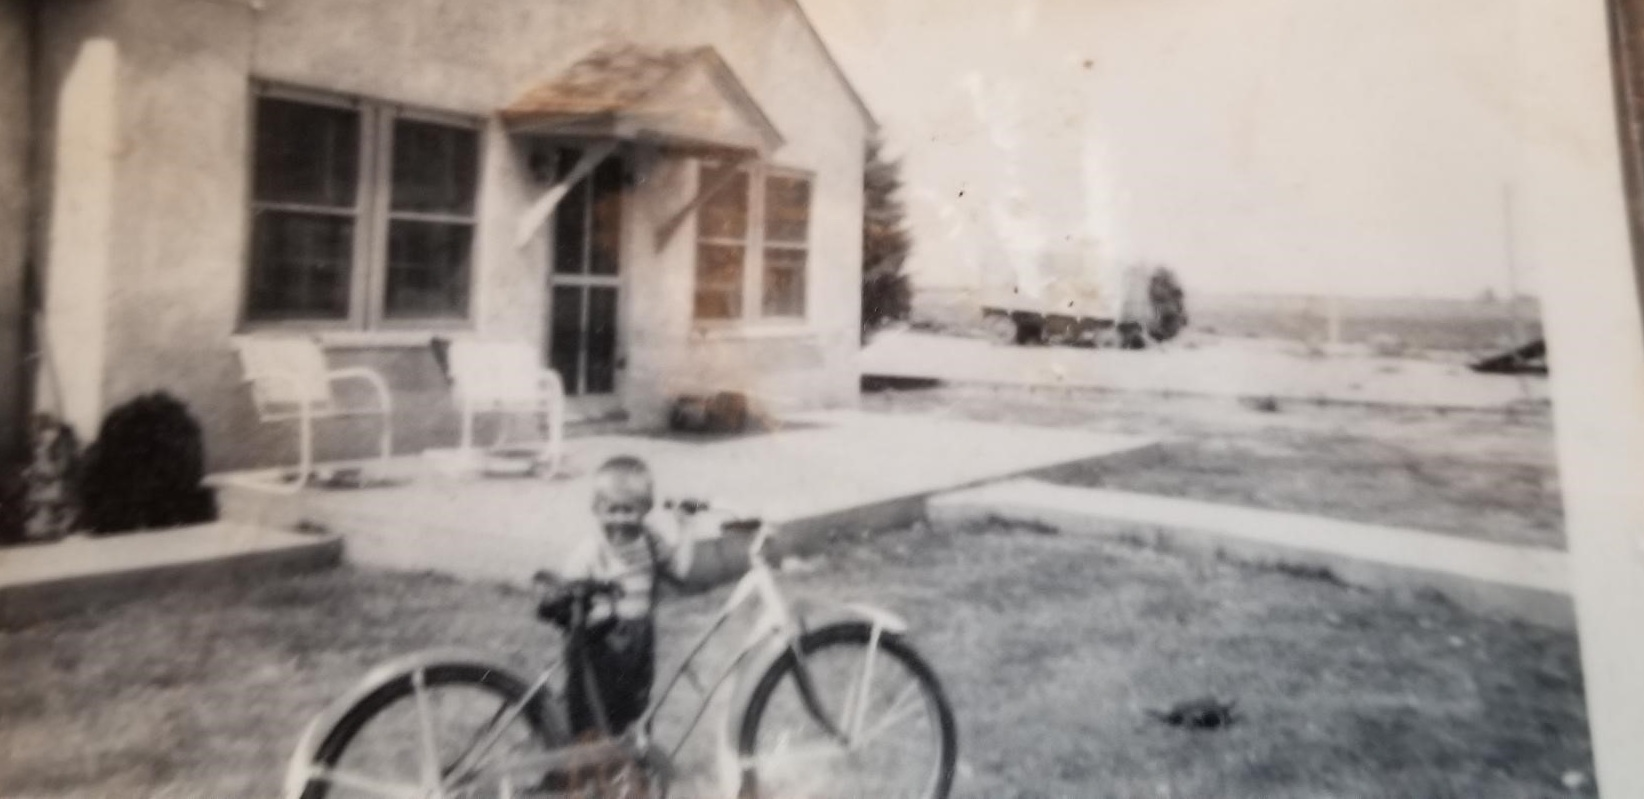 The Ruebush farm's very humble beginnings. My grandfather started farming the land when he was 12. When he married my Grannie, he built the house, by hand. They had 5 children; this is my Dad.